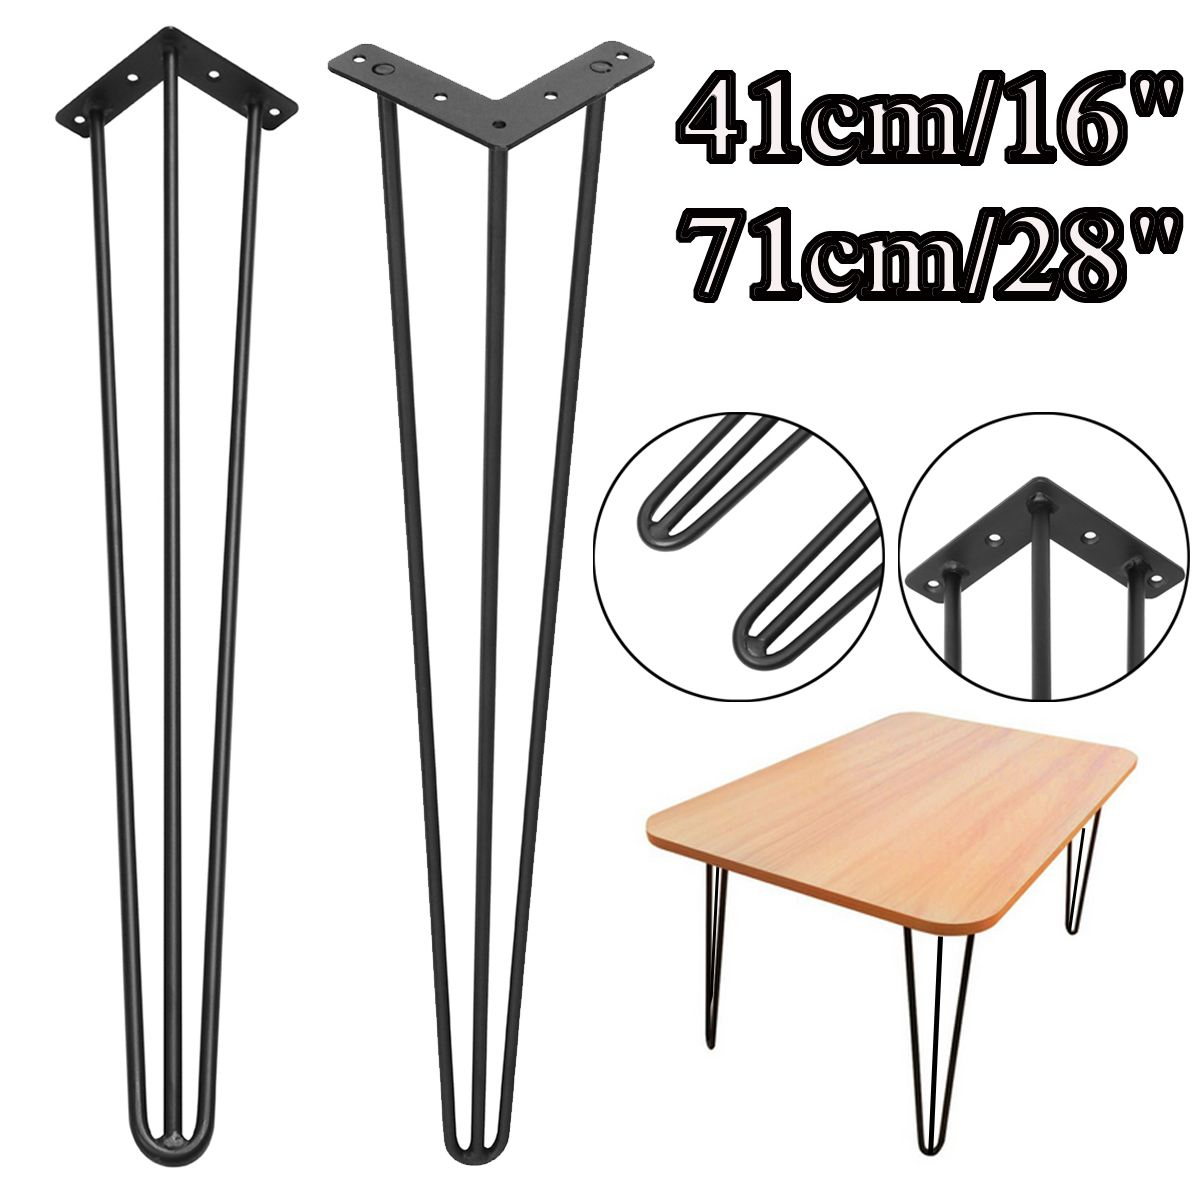 Newest 1Pcs 41/71 Cm 3 Rod Dining Table Legs Home Accessories DIY Handcraft Hallway Desk Steel Furniture Legs Support Sofa Legs